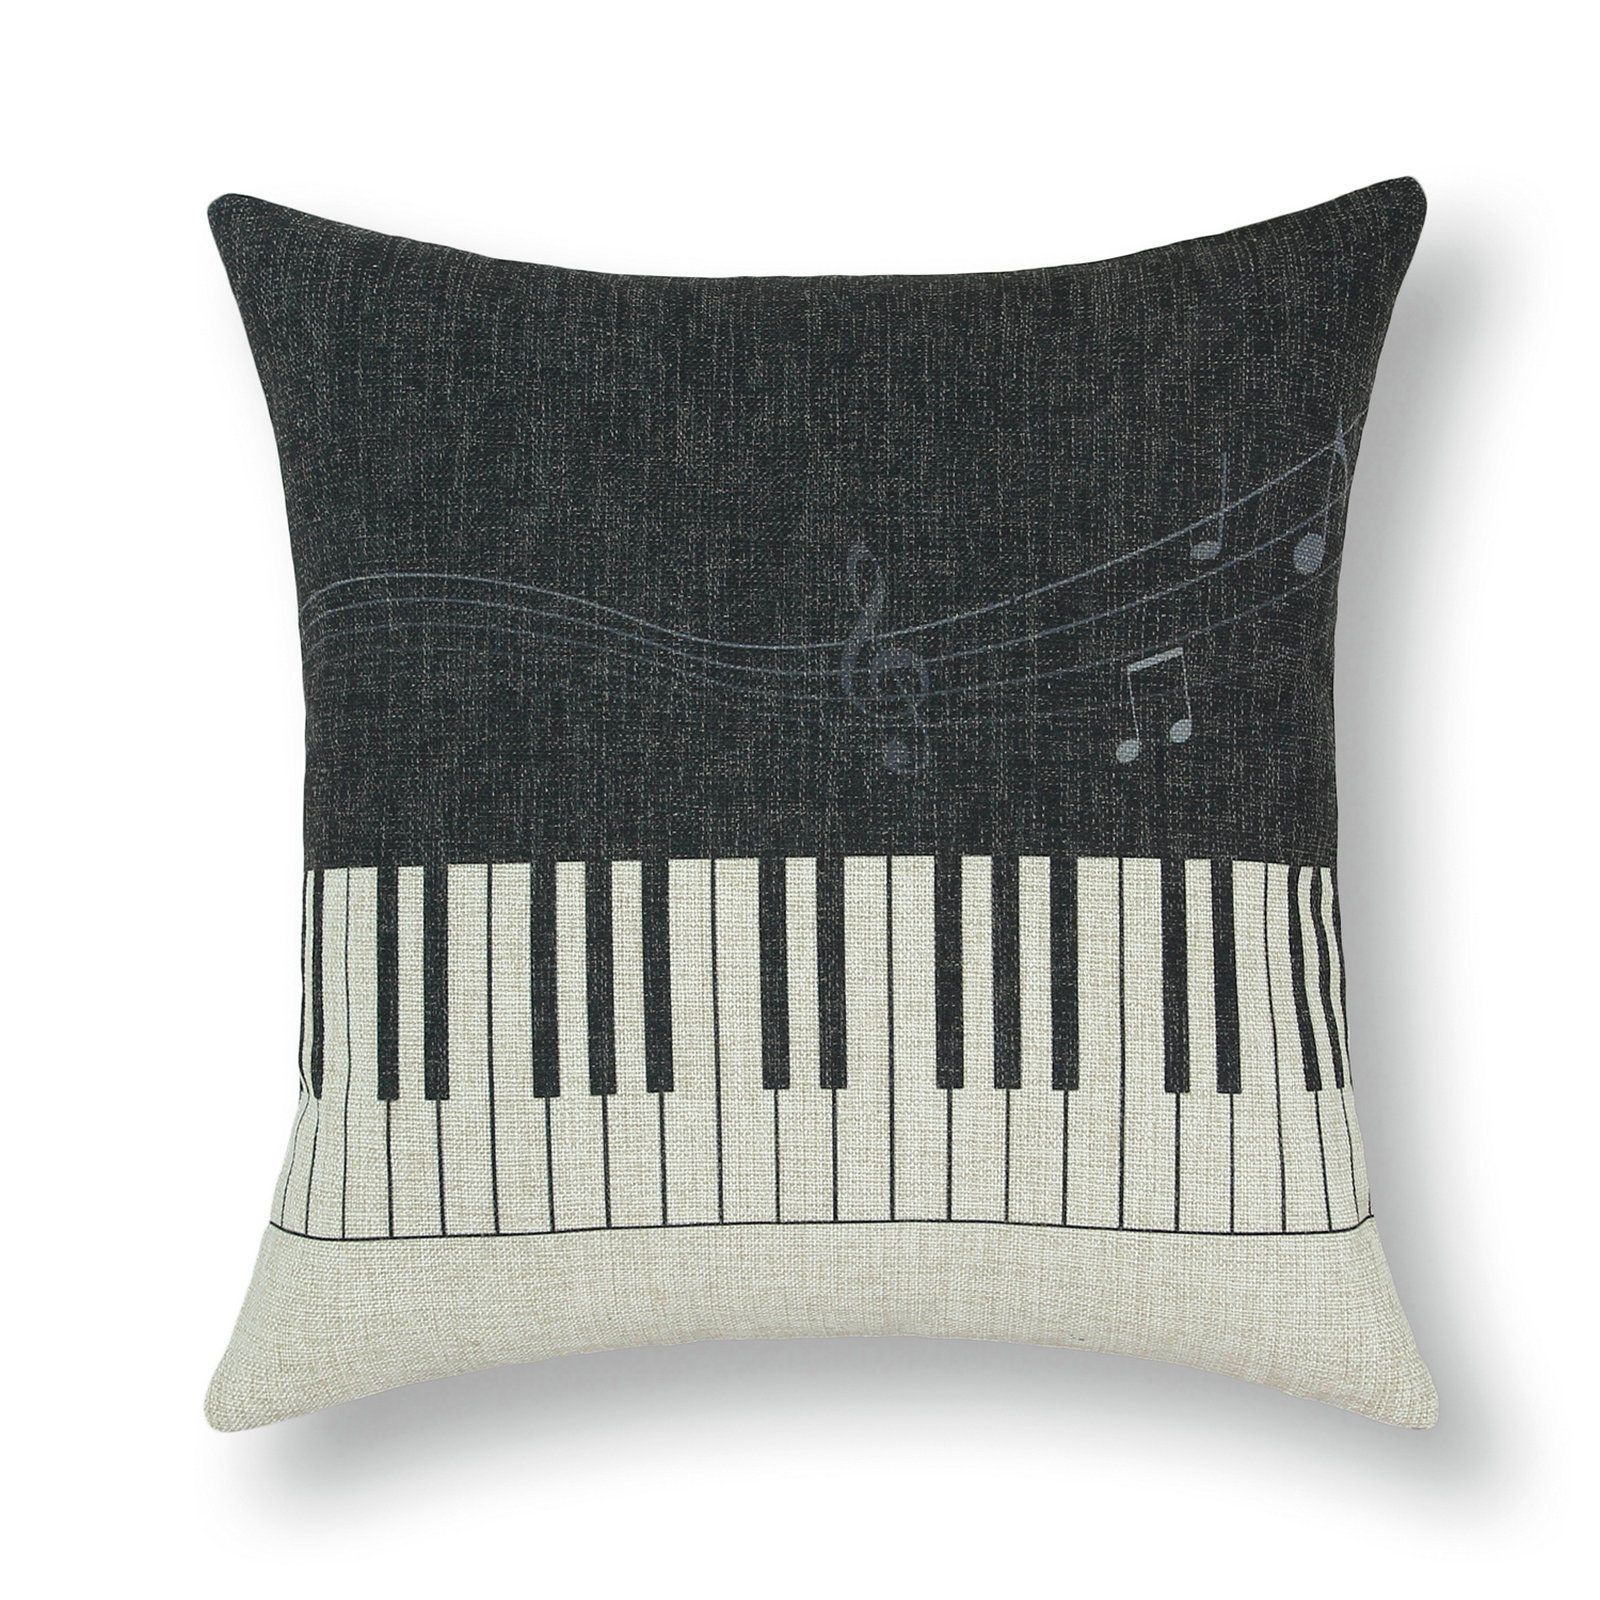 Musical Note Symphony Print Cushion Covers Pillows Shell Home Sofa